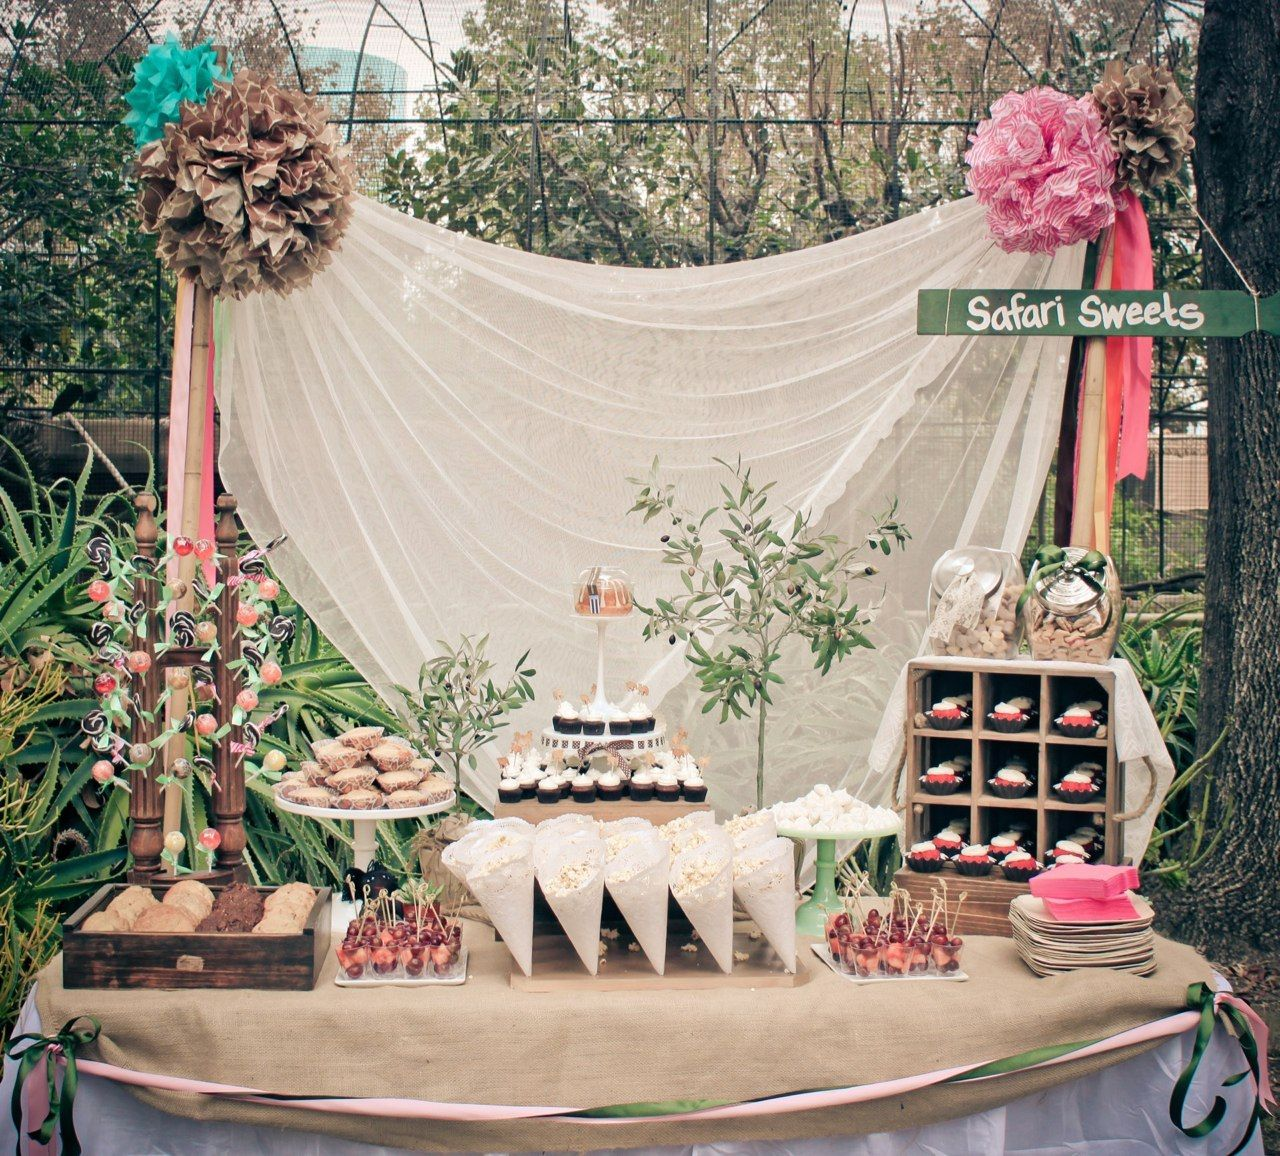 Shabby Chic Party Decorating Ideas Shabby Chic Parties Safari Chic